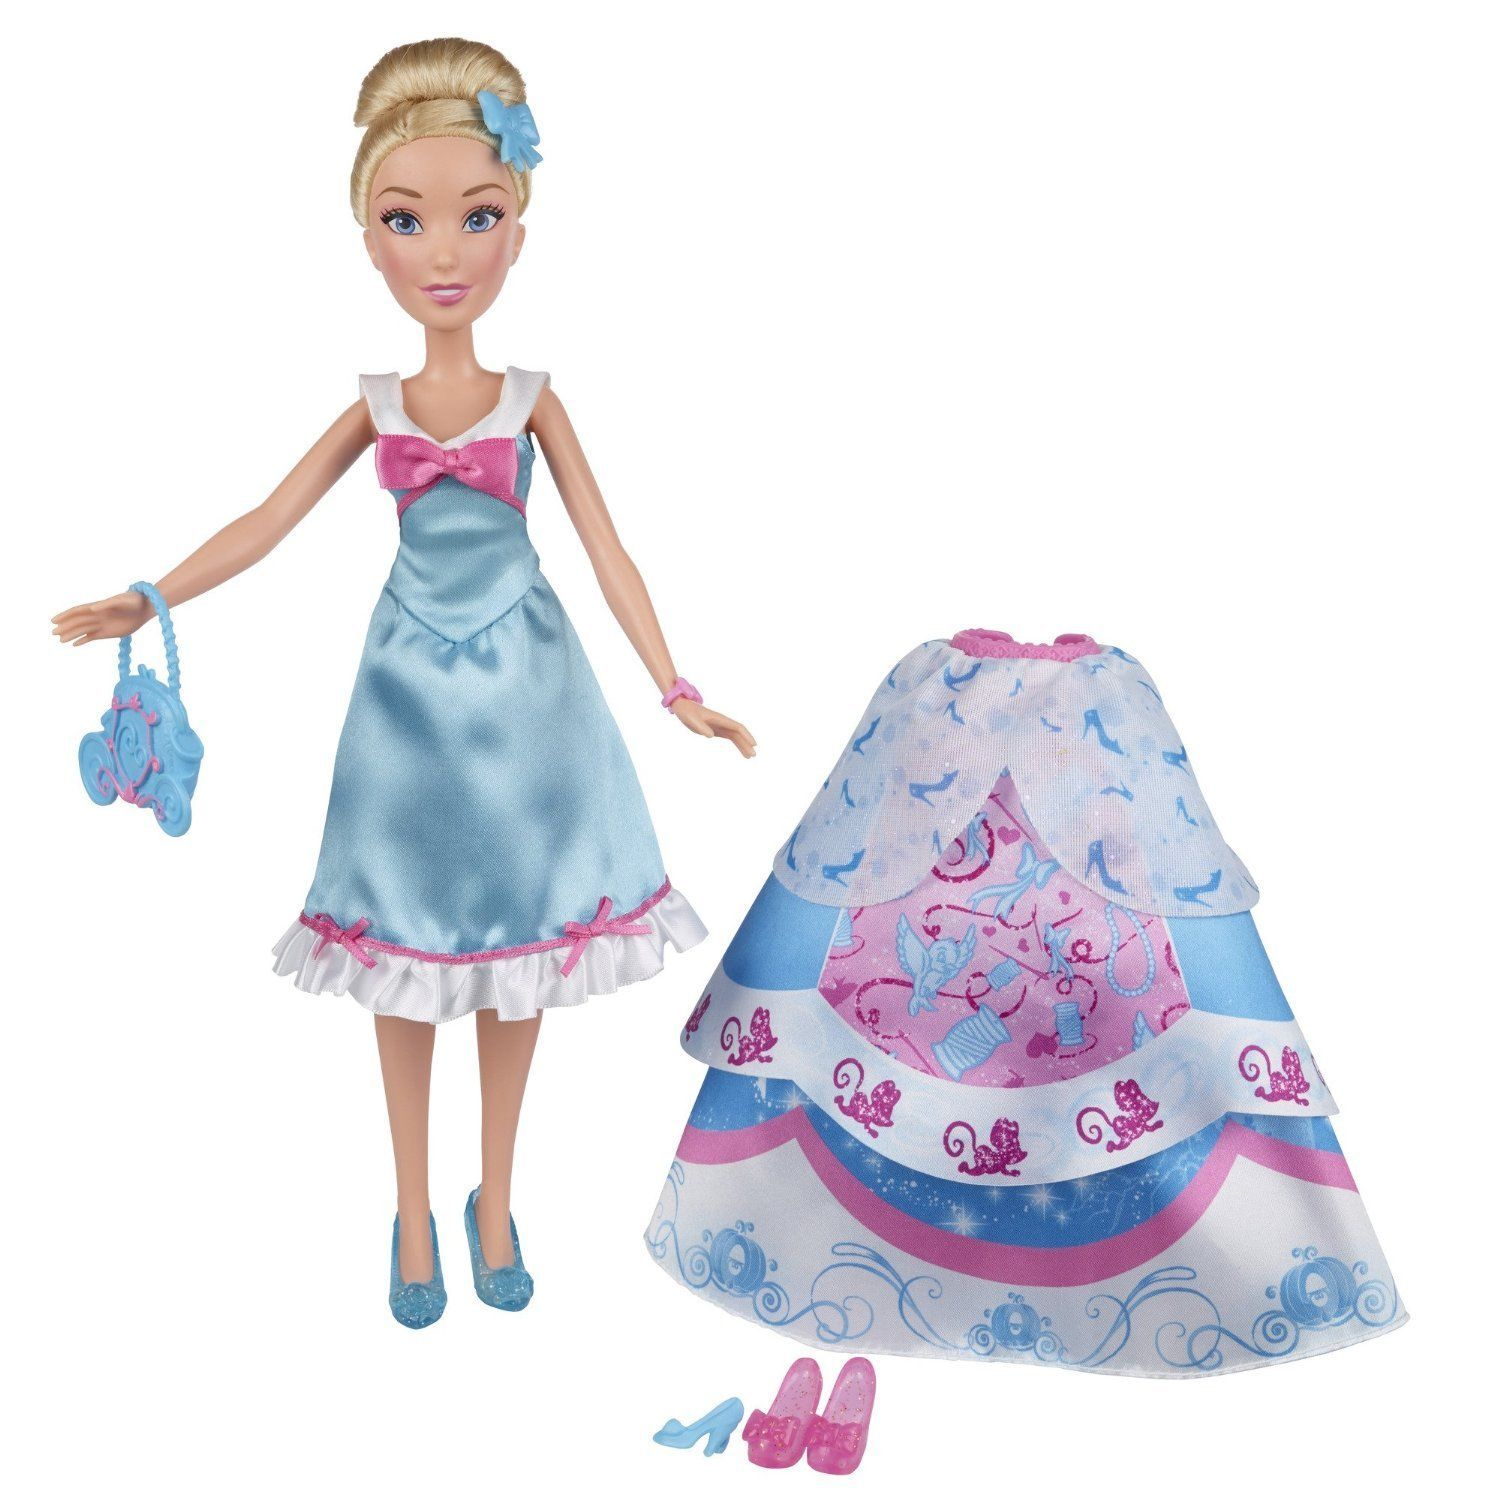 Disney Princess Cinderella Layer n' Style Doll in Blue Pink by Hasbro